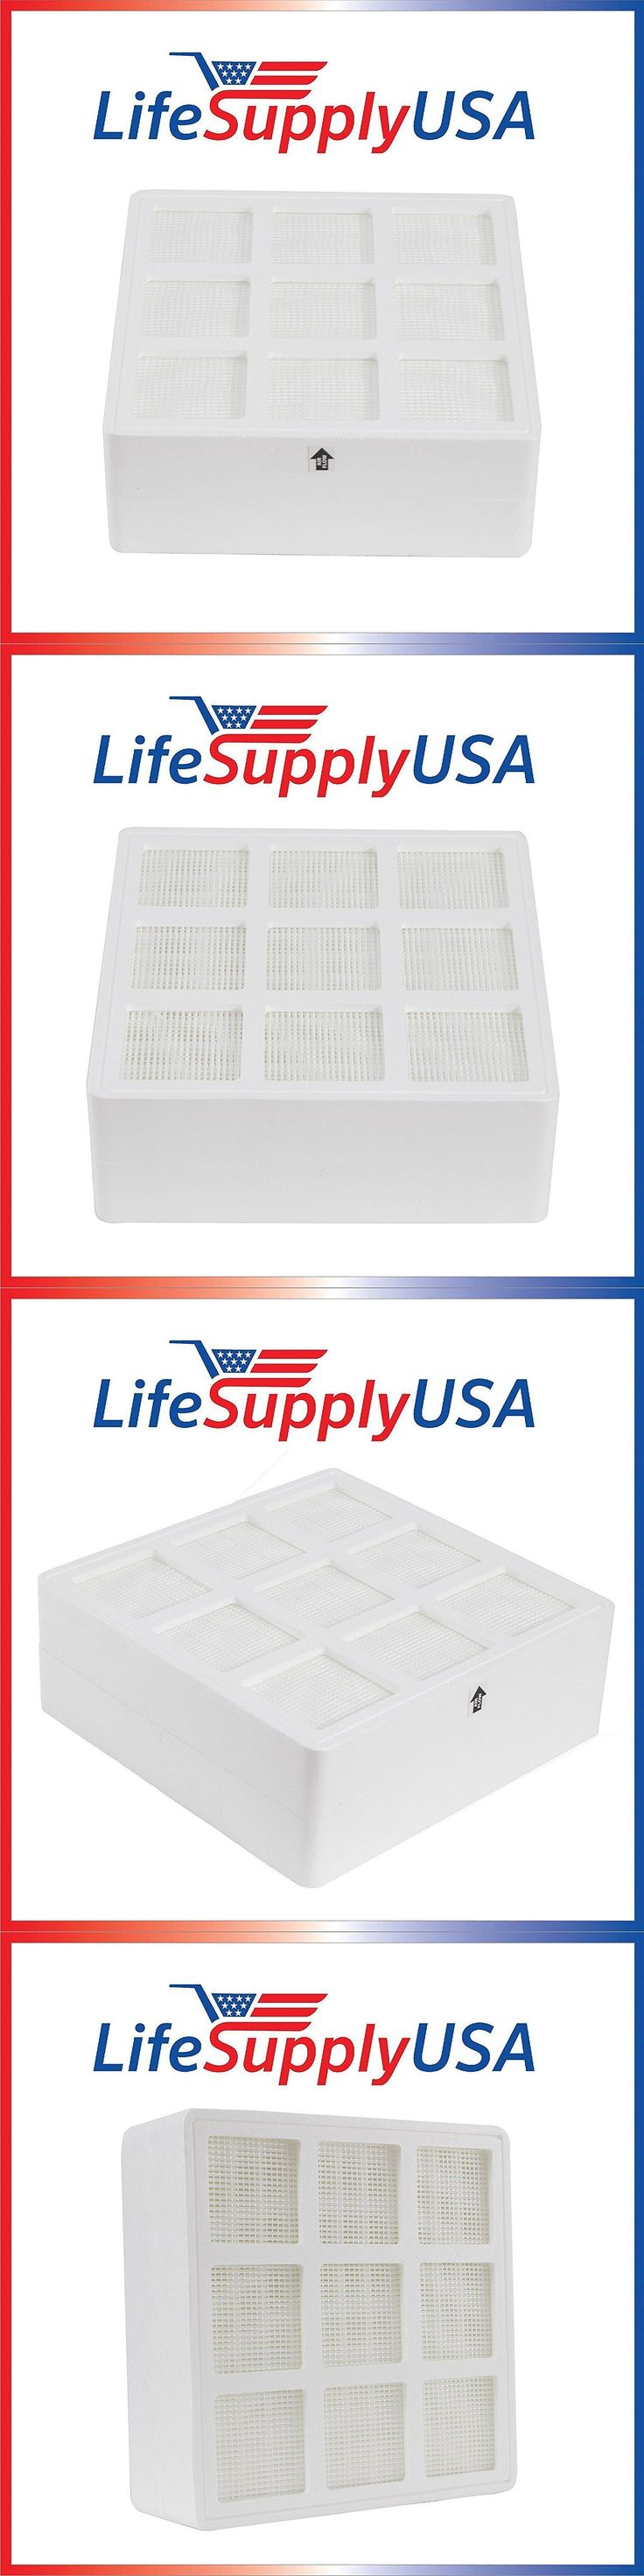 Air Purifiers 43510 Lifesupplyusa Filter For Iqair Hyper